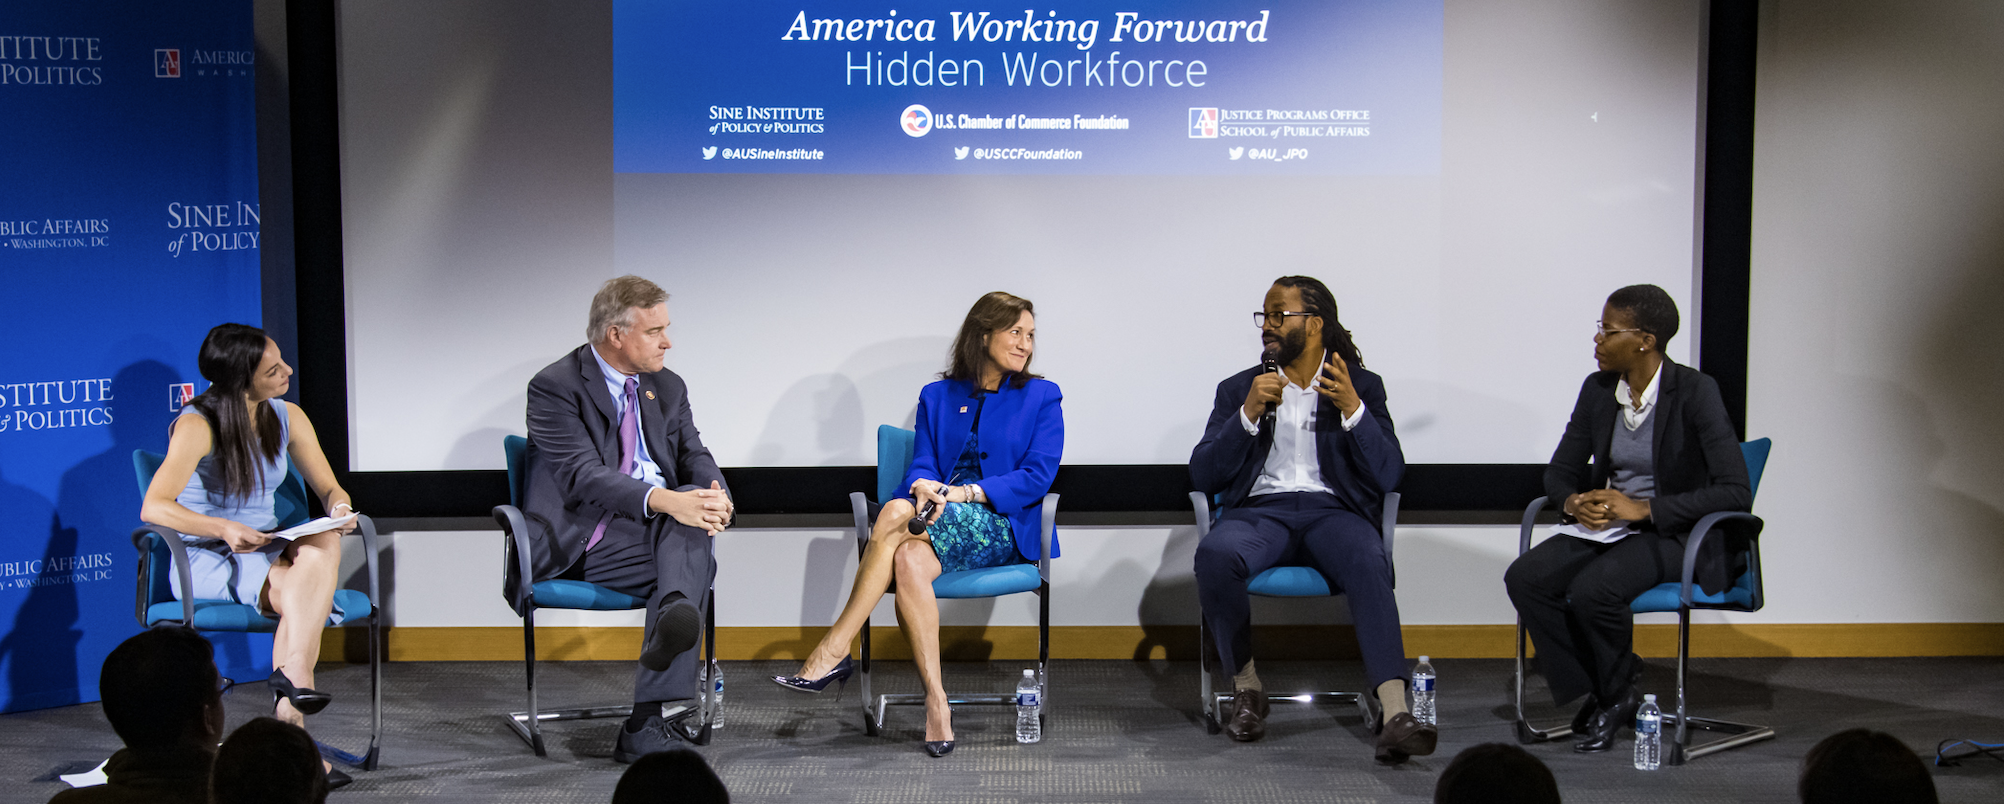 panel of speakers at America Working Forward